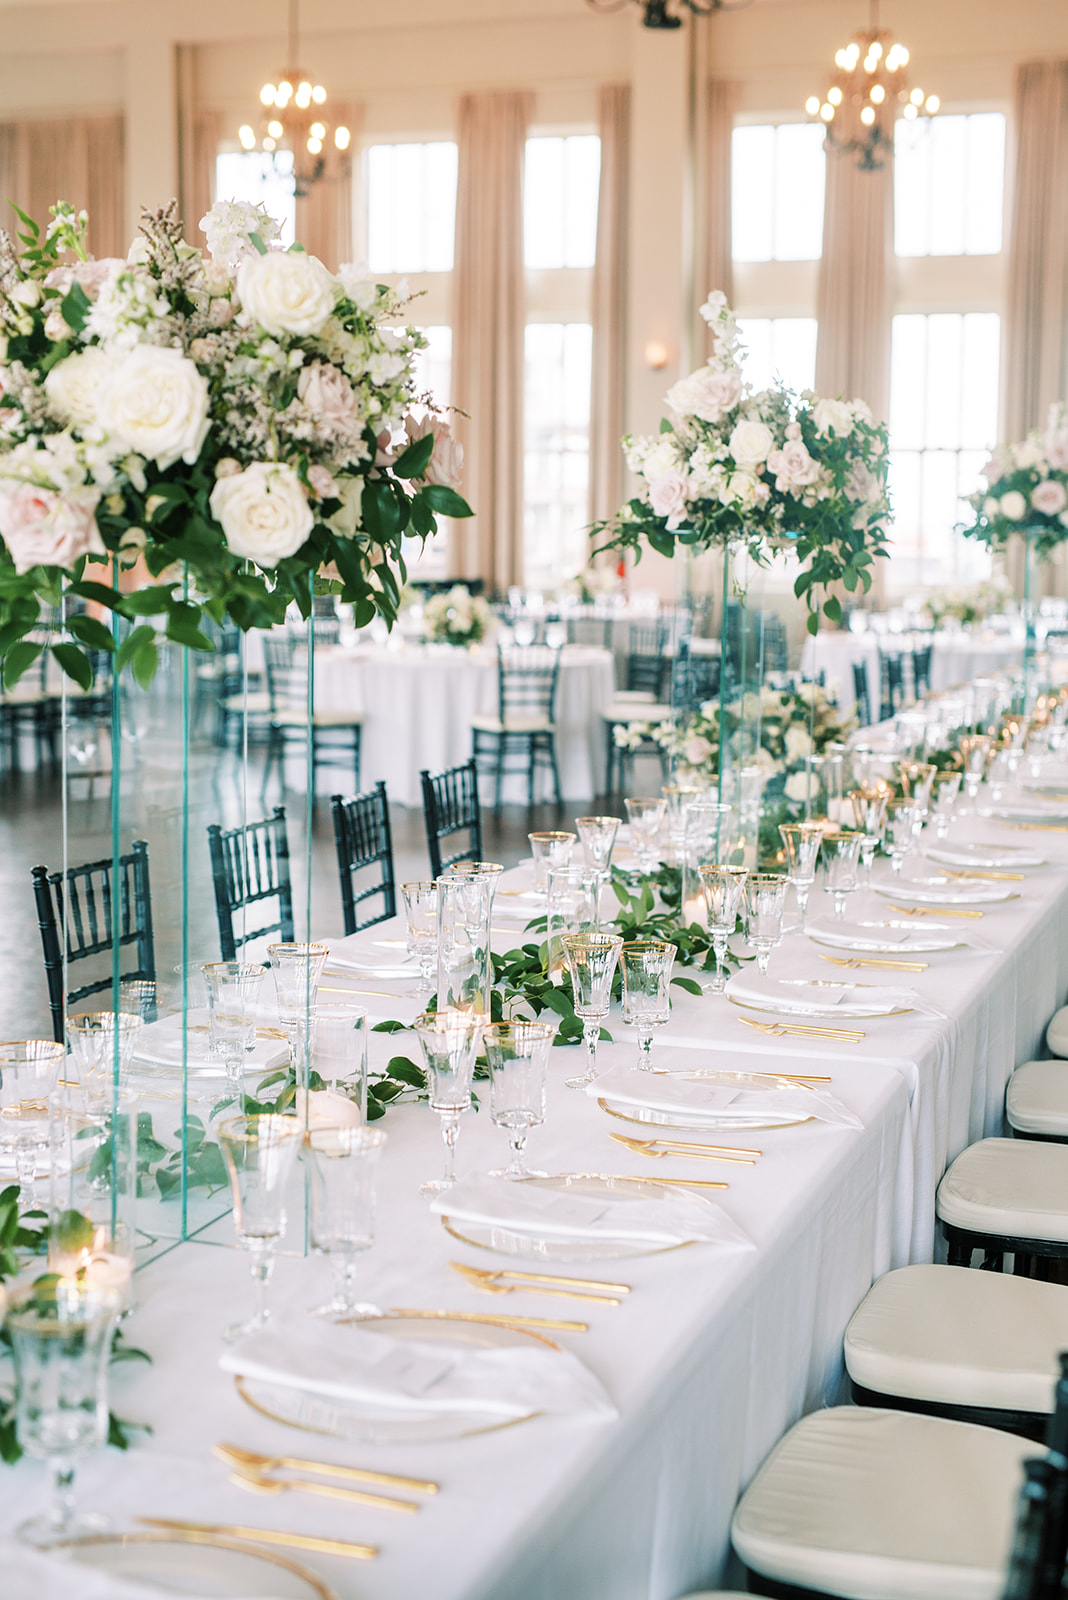 Room on Main wedding planned by Alexa Kay Events